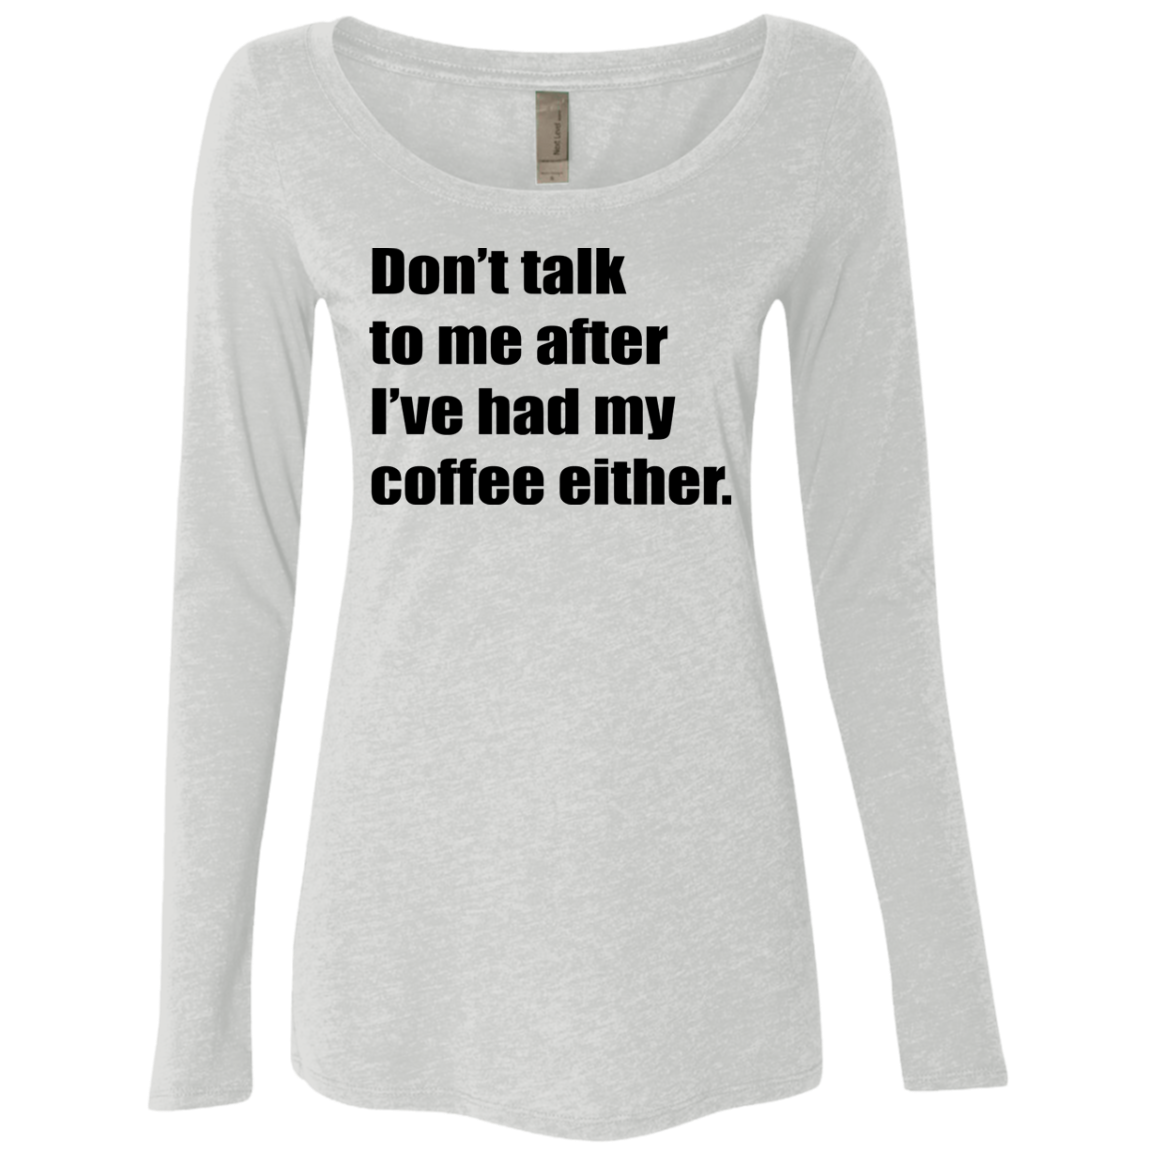 Don't talk to me after I've had my coffee either Women's Long Sleeve Tee